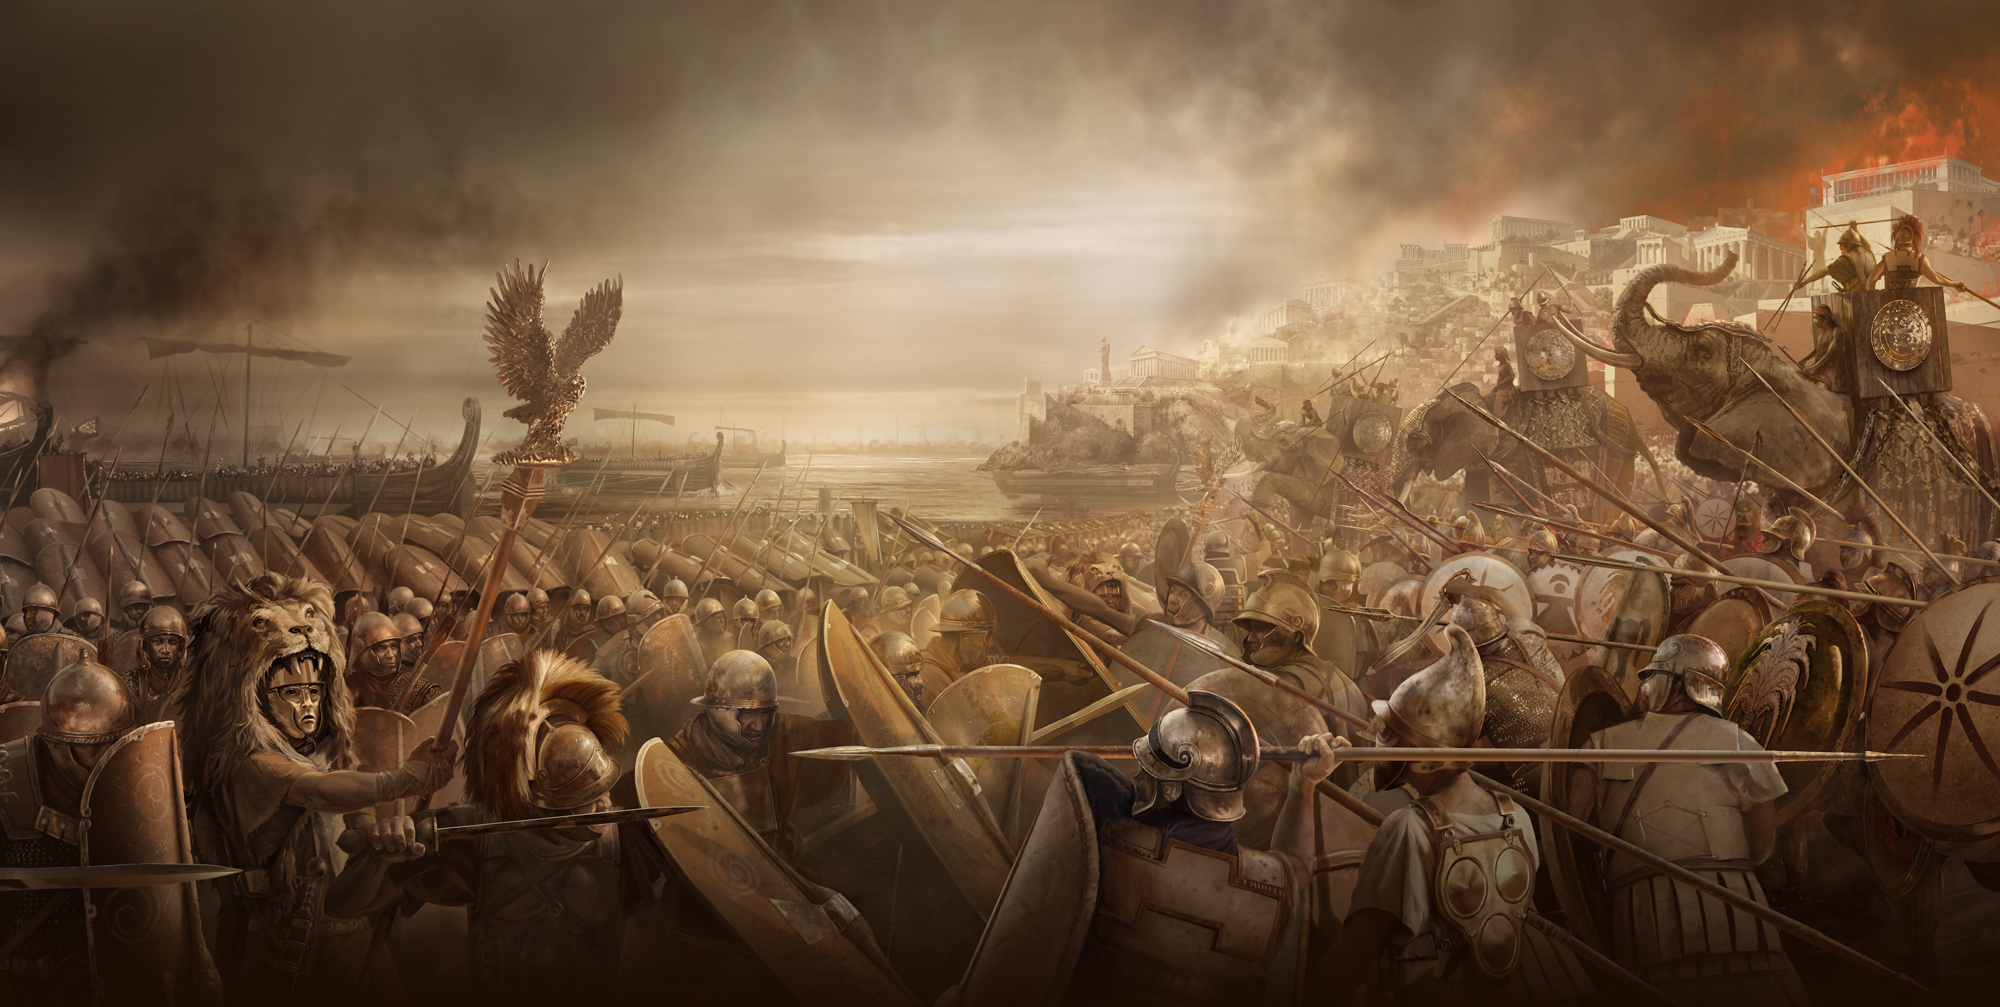 war between rome and carthage